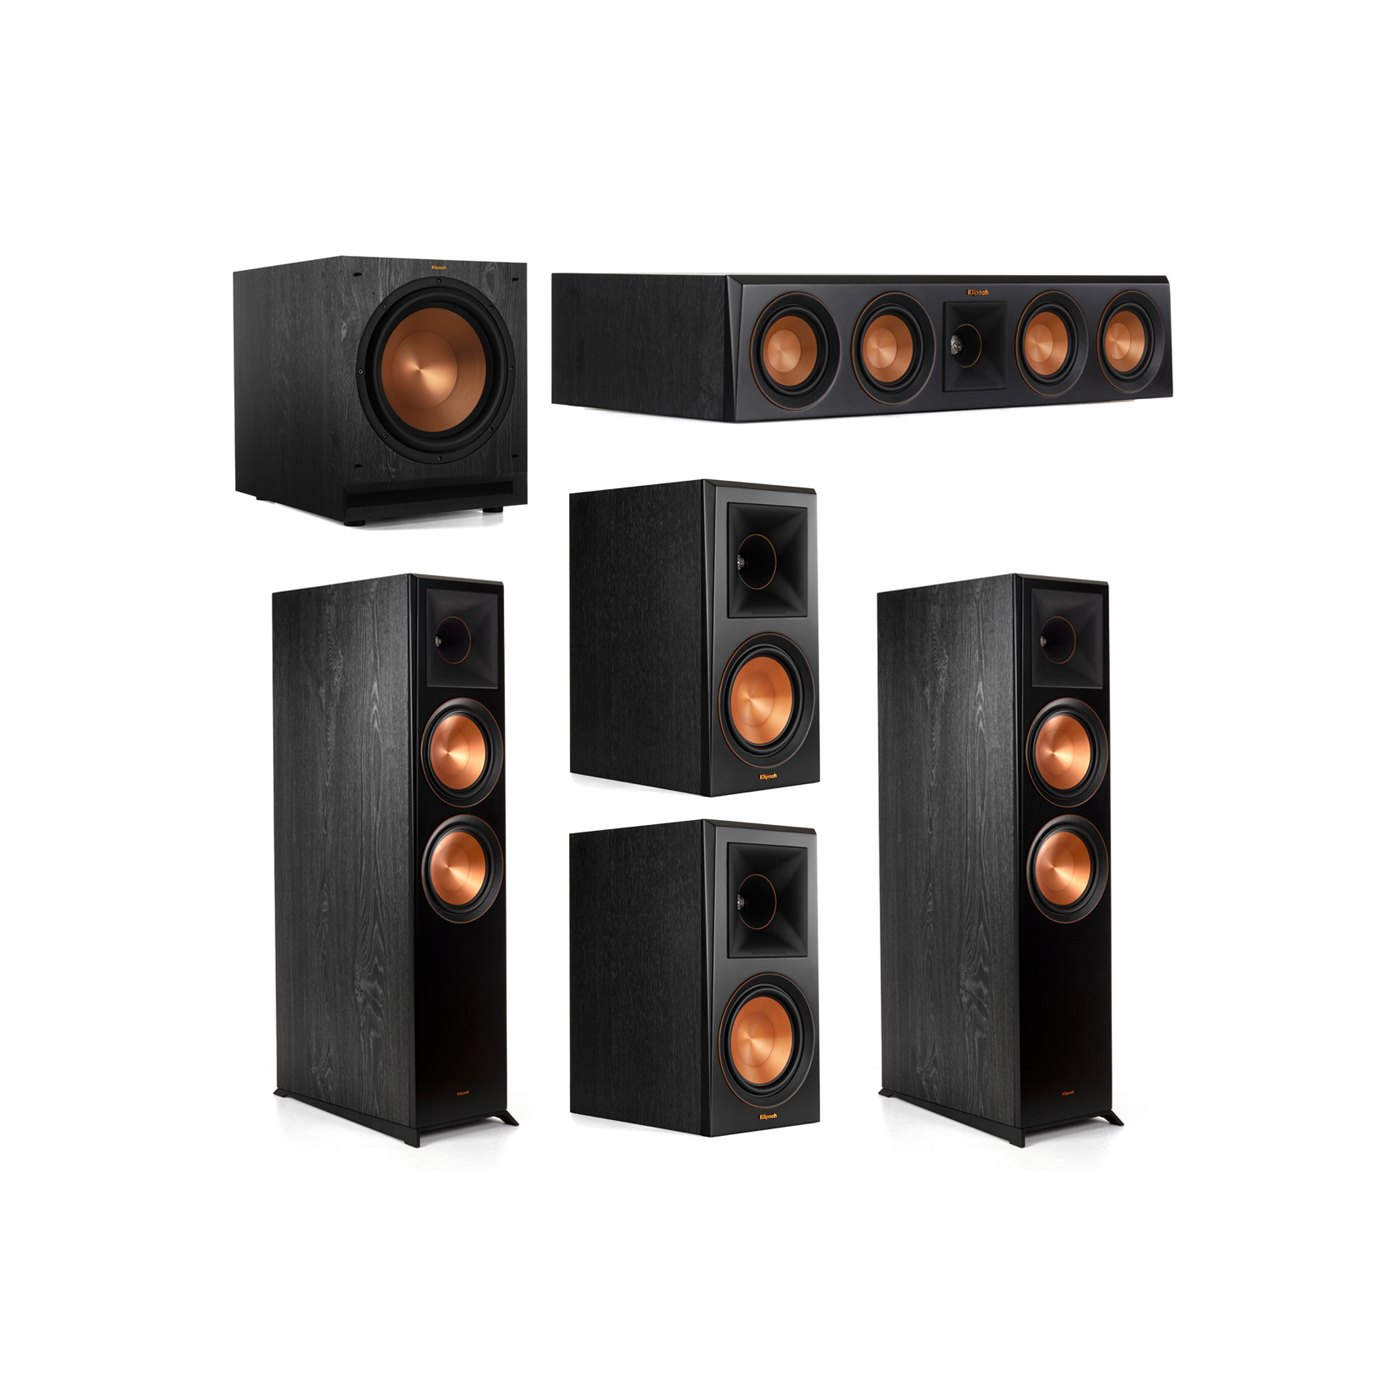 Klipsch 5.1.2 System - 2 RP-8060FA Dolby Atmos Speakers, 1 RP-404C, 2 RP-600M Speakers, 1 SPL-120